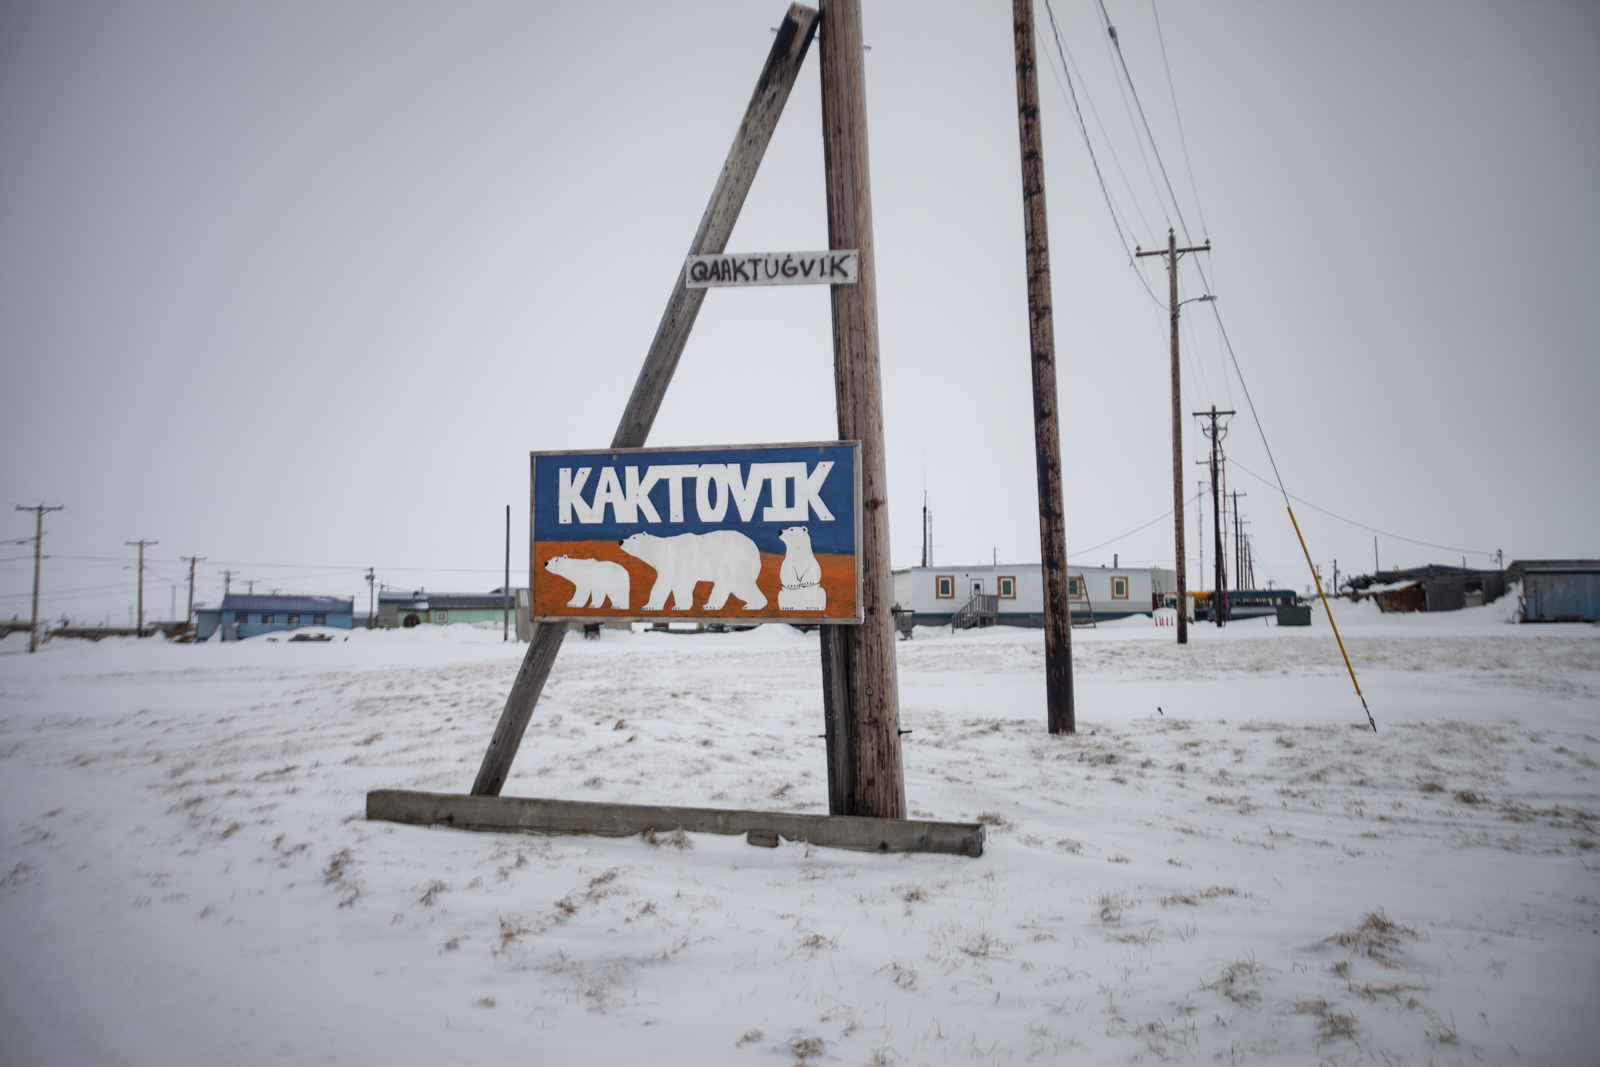 Sign at the edge of town which includes an alternate spelling: Qaaktugvik